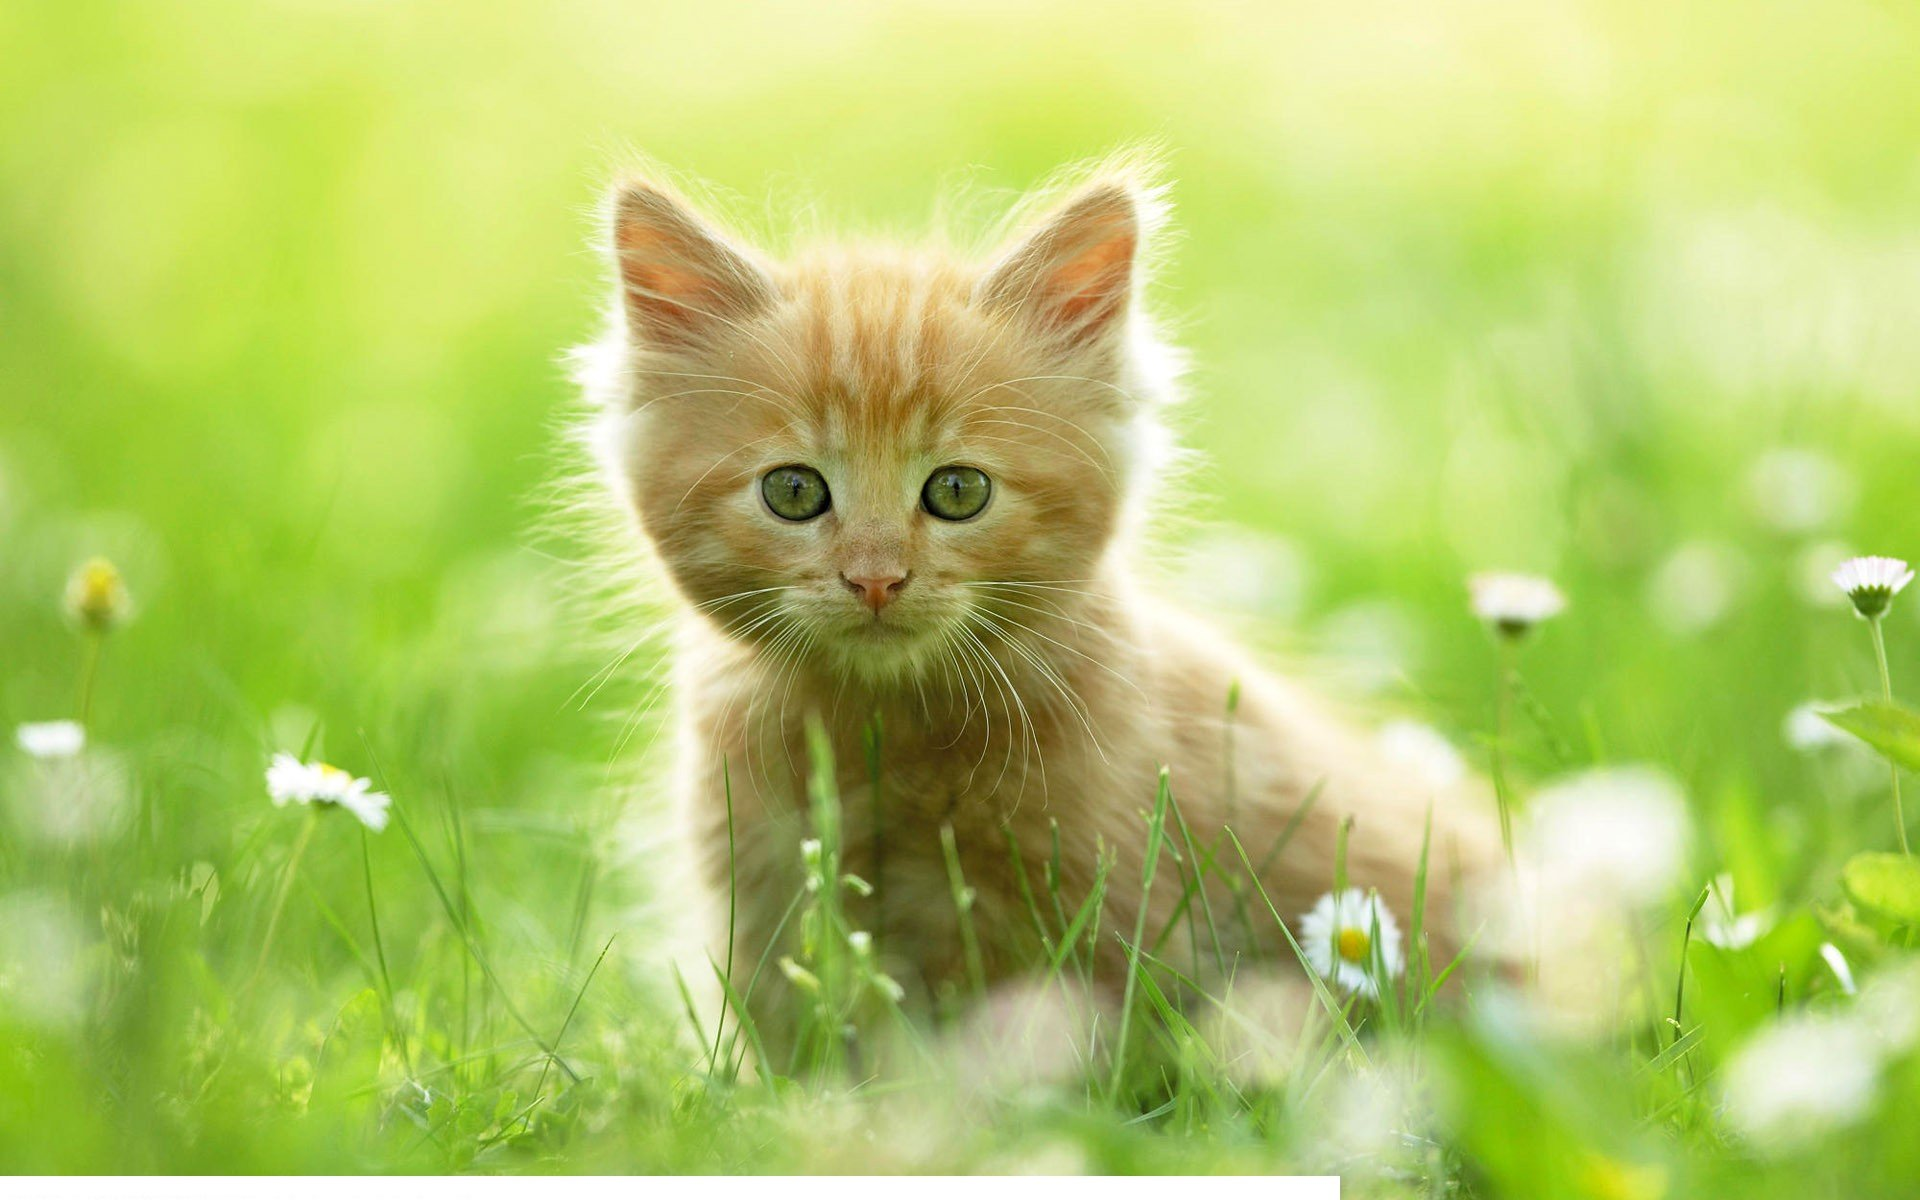 How to use a month to train kittens using cat litter?